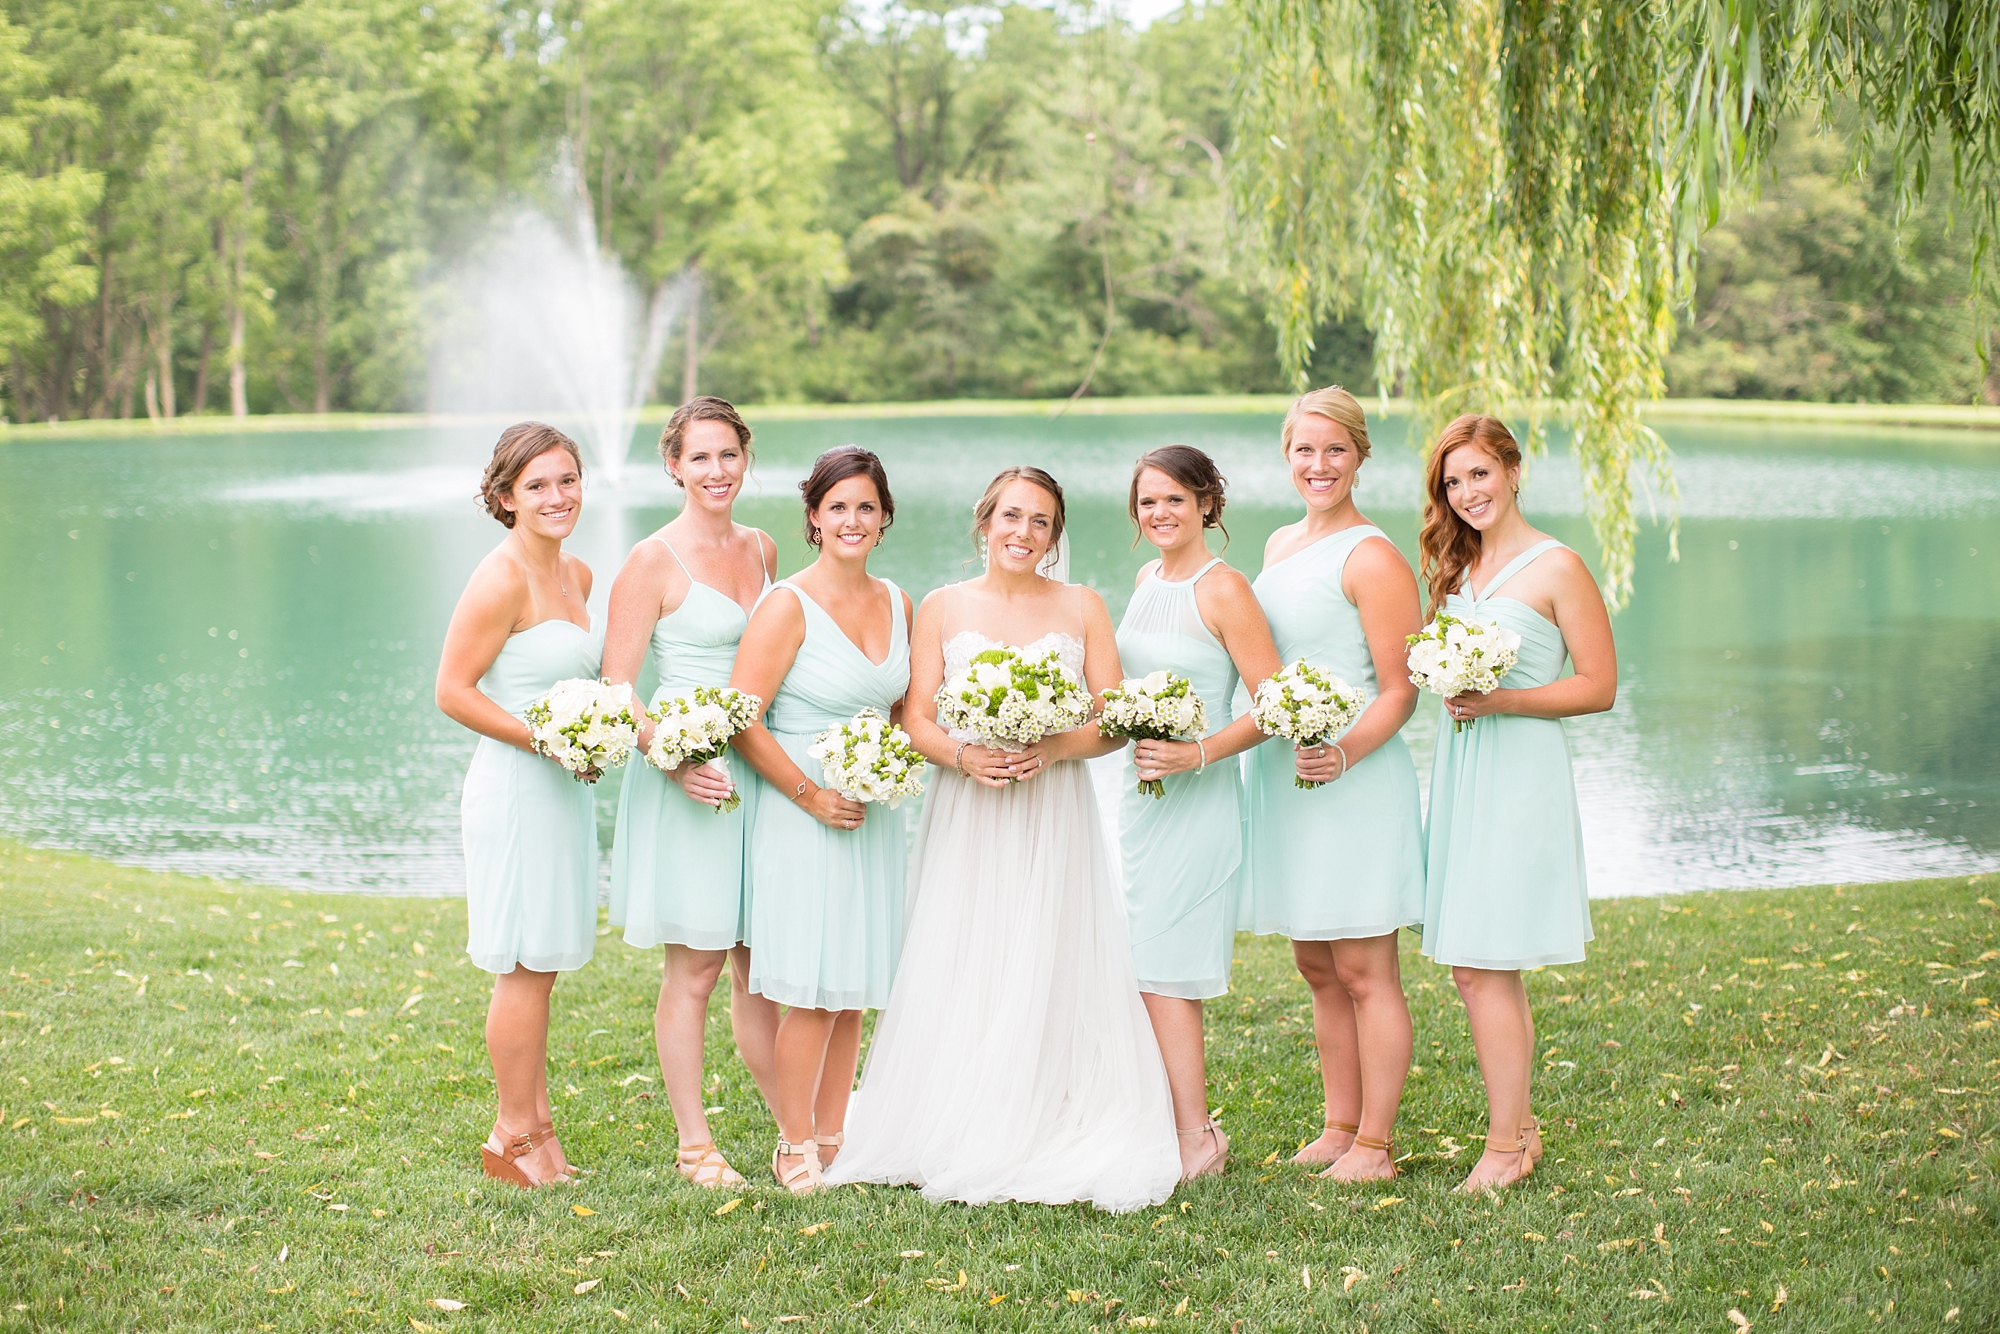 Herndon 2-Bridal Party-214_anna grace photography baltimore maryland wedding photographer pond view farm photo.jpg